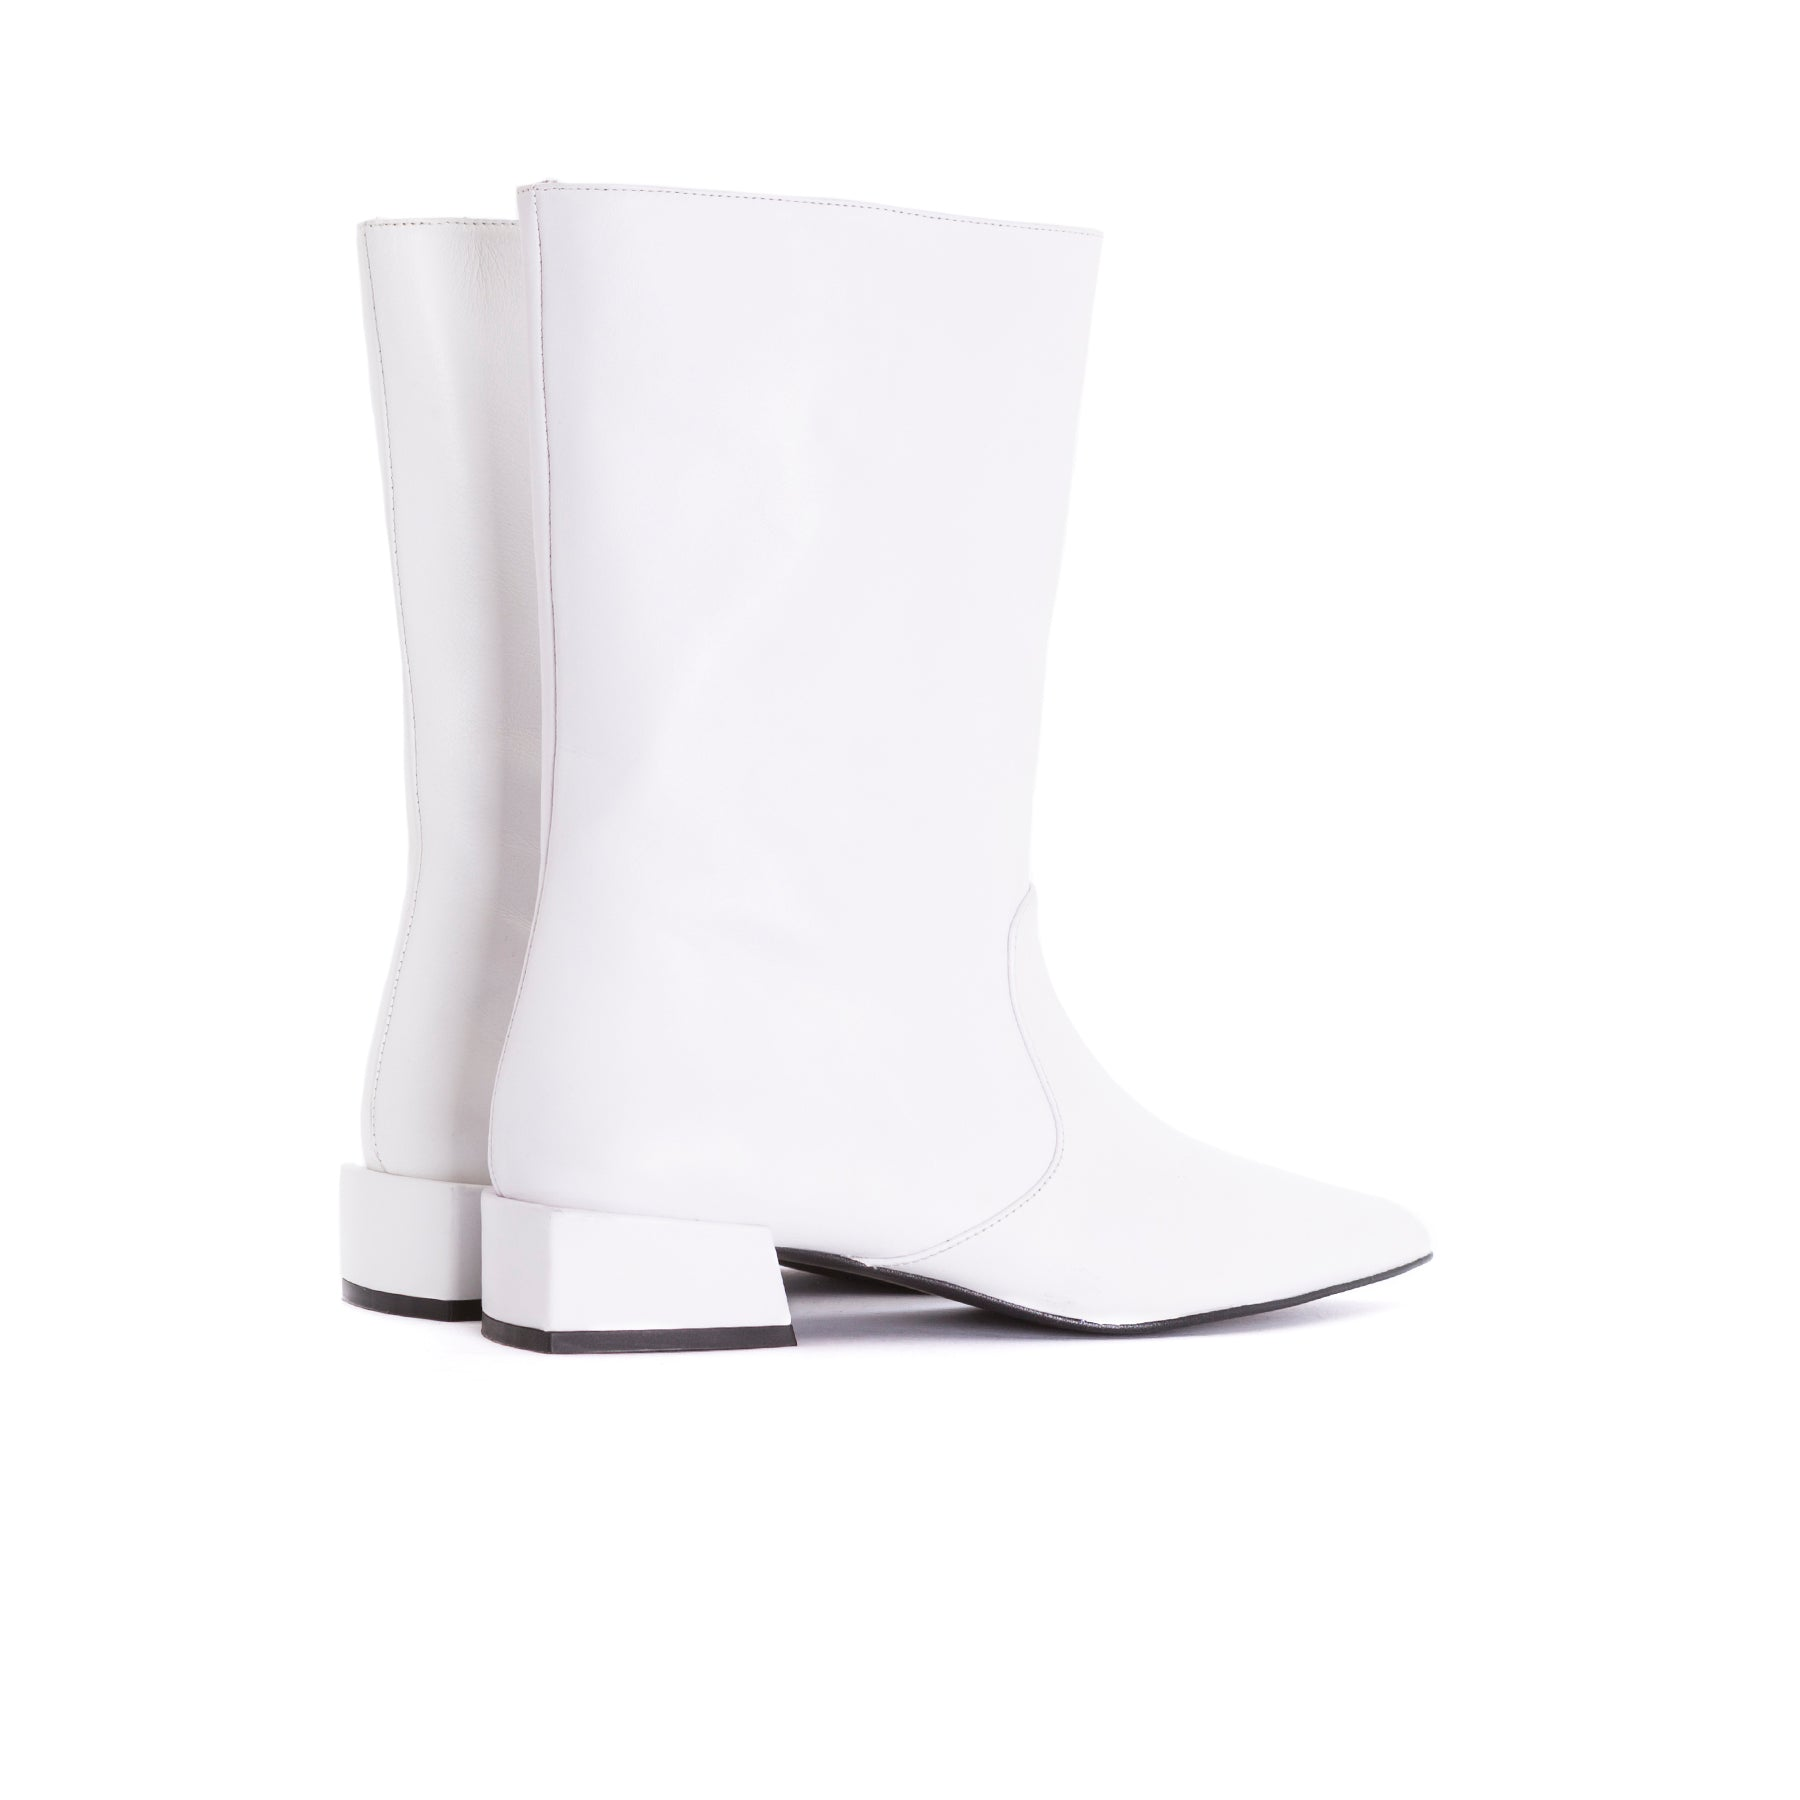 Bono White Leather Booties